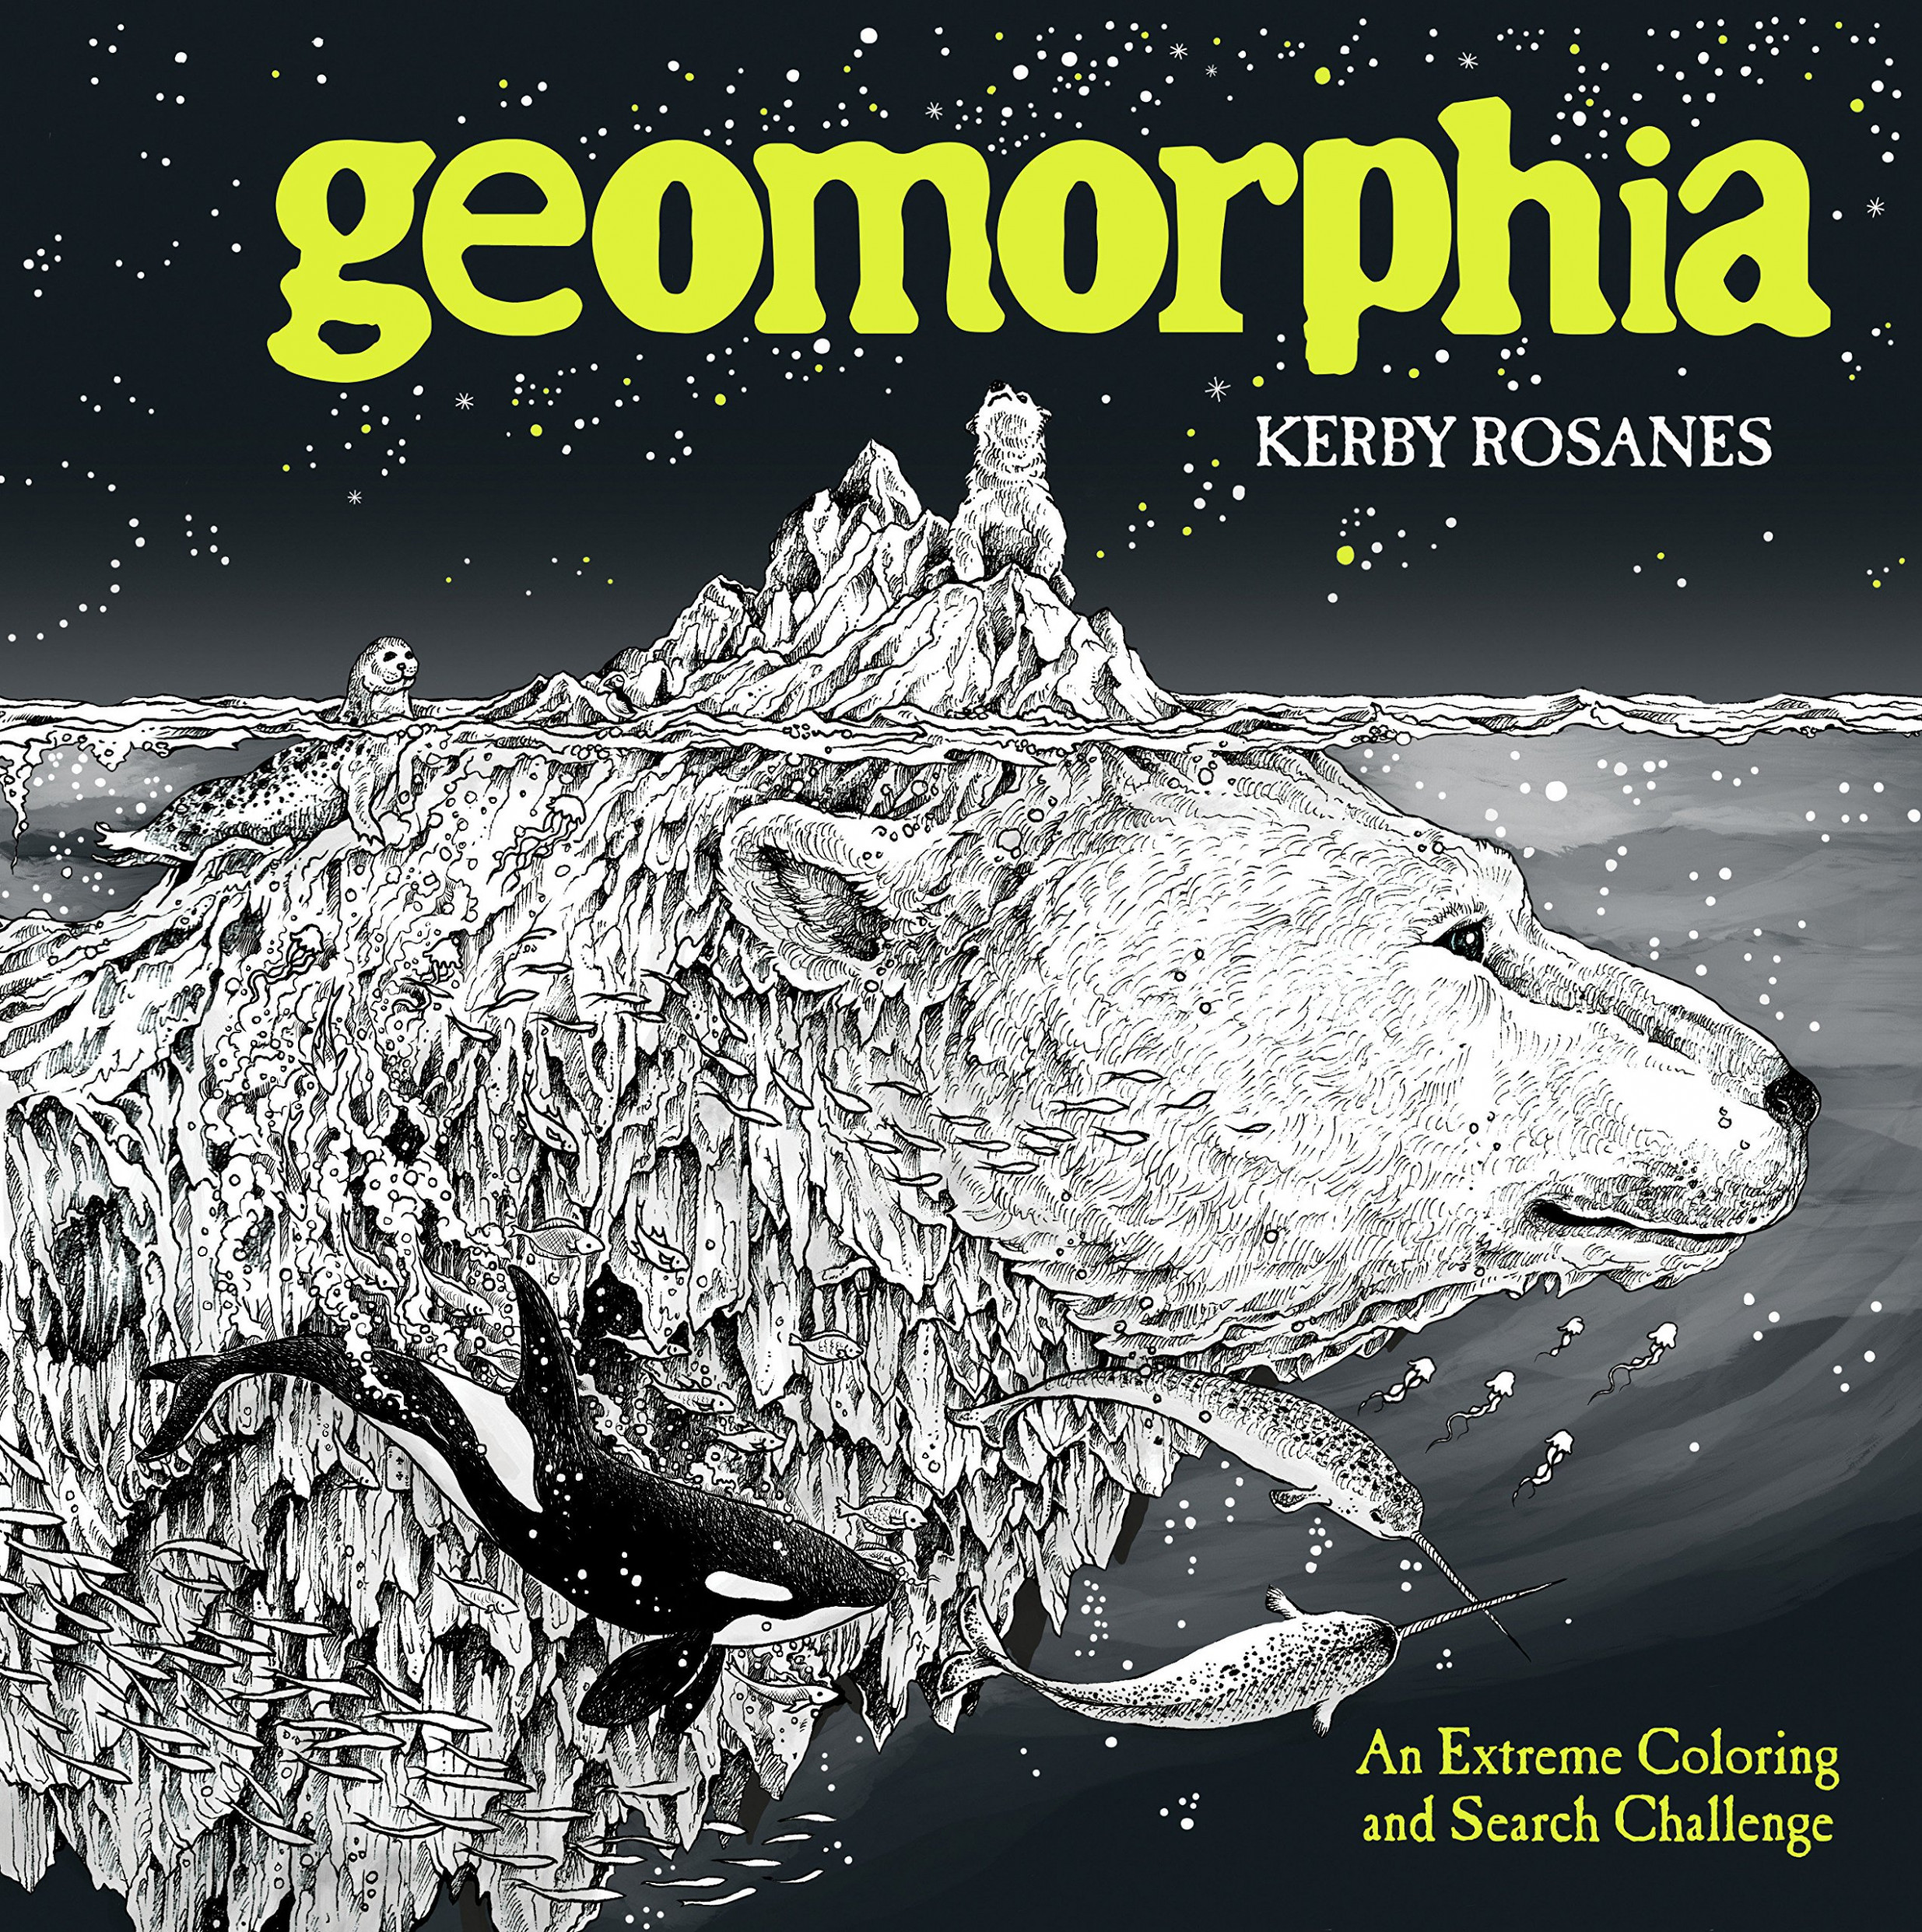 Amazon.com: Geomorphia: An Extreme Coloring and Search Challenge ..